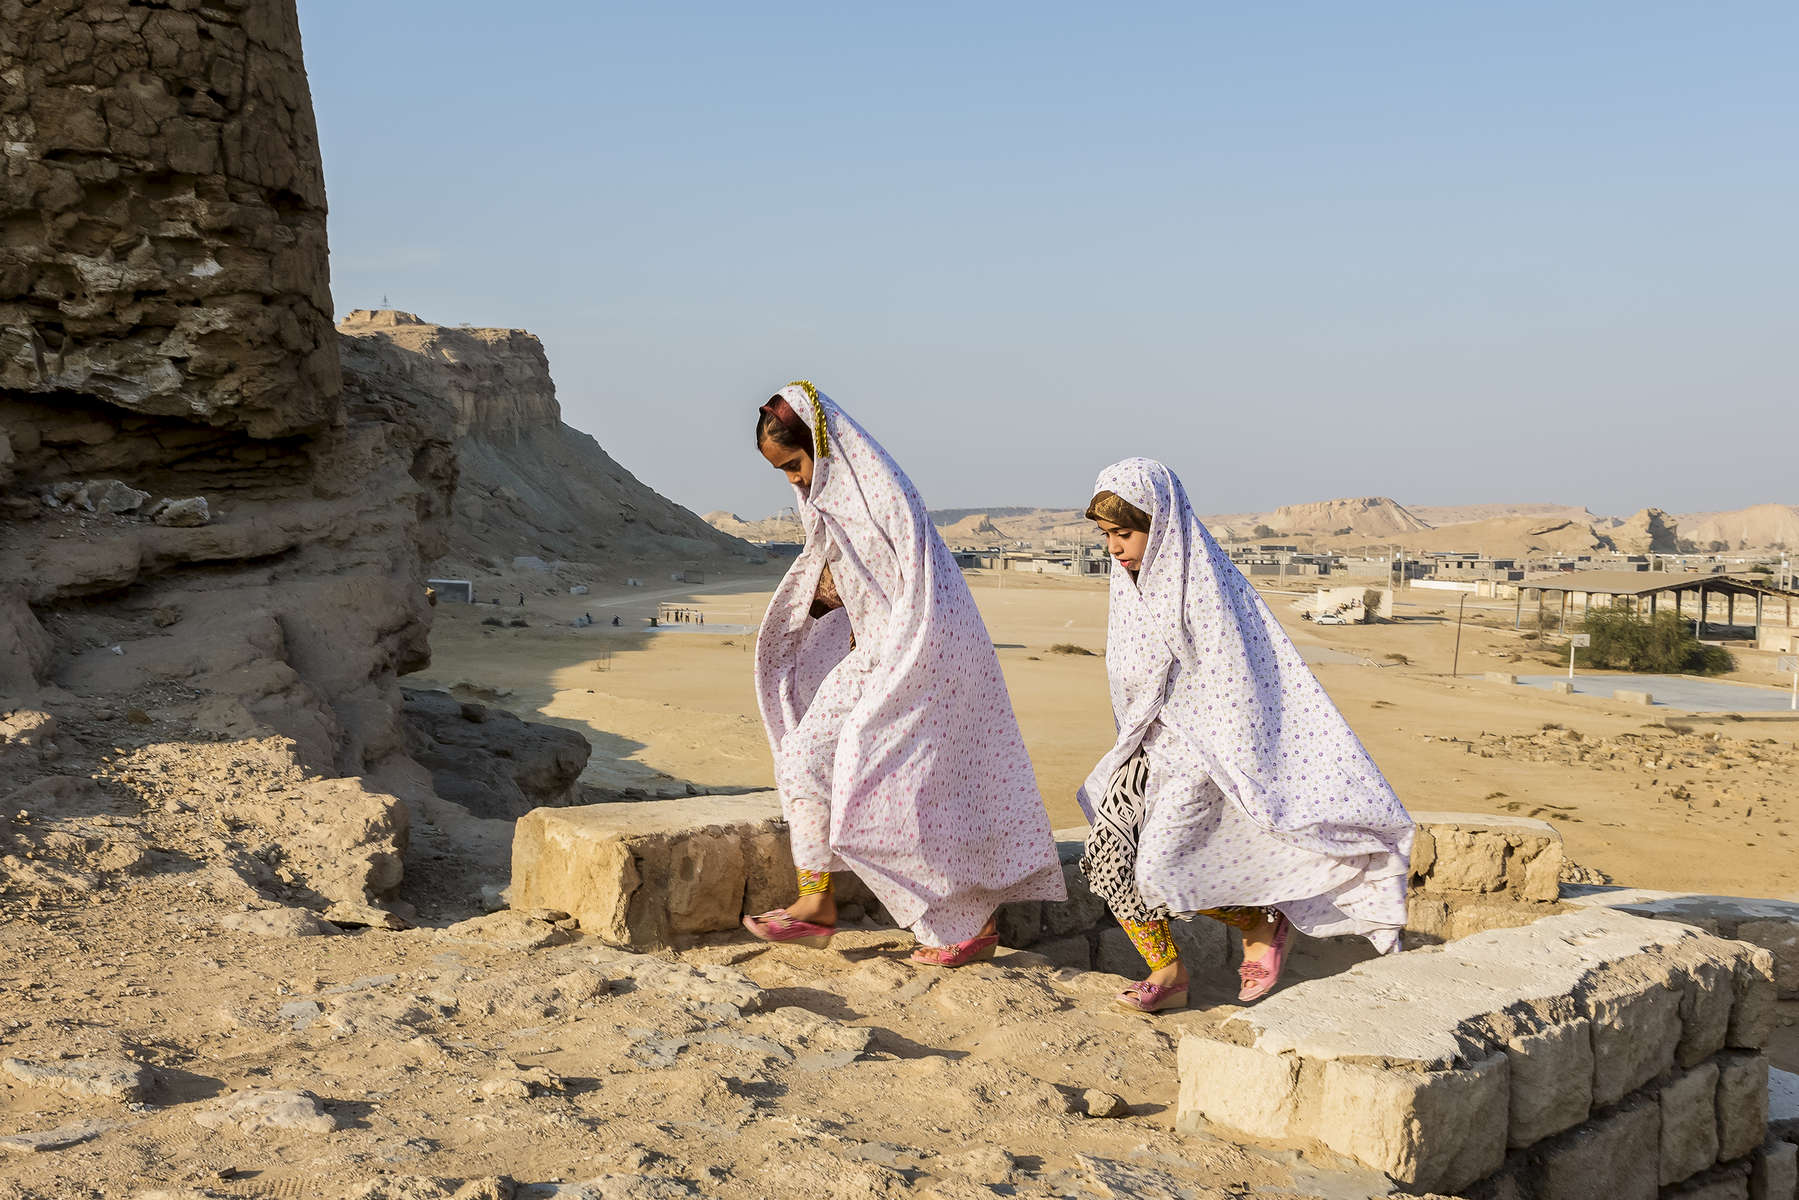 Two young girls pass the ruins of a Portuguese castle in the village of Laft, Qeshm Island, Persian Gulf.  In 2009 Iran and Portugal prepared joint plans to restore historical sites such as this, which are scattered around the gulf region.  Little work seems to have taken place.